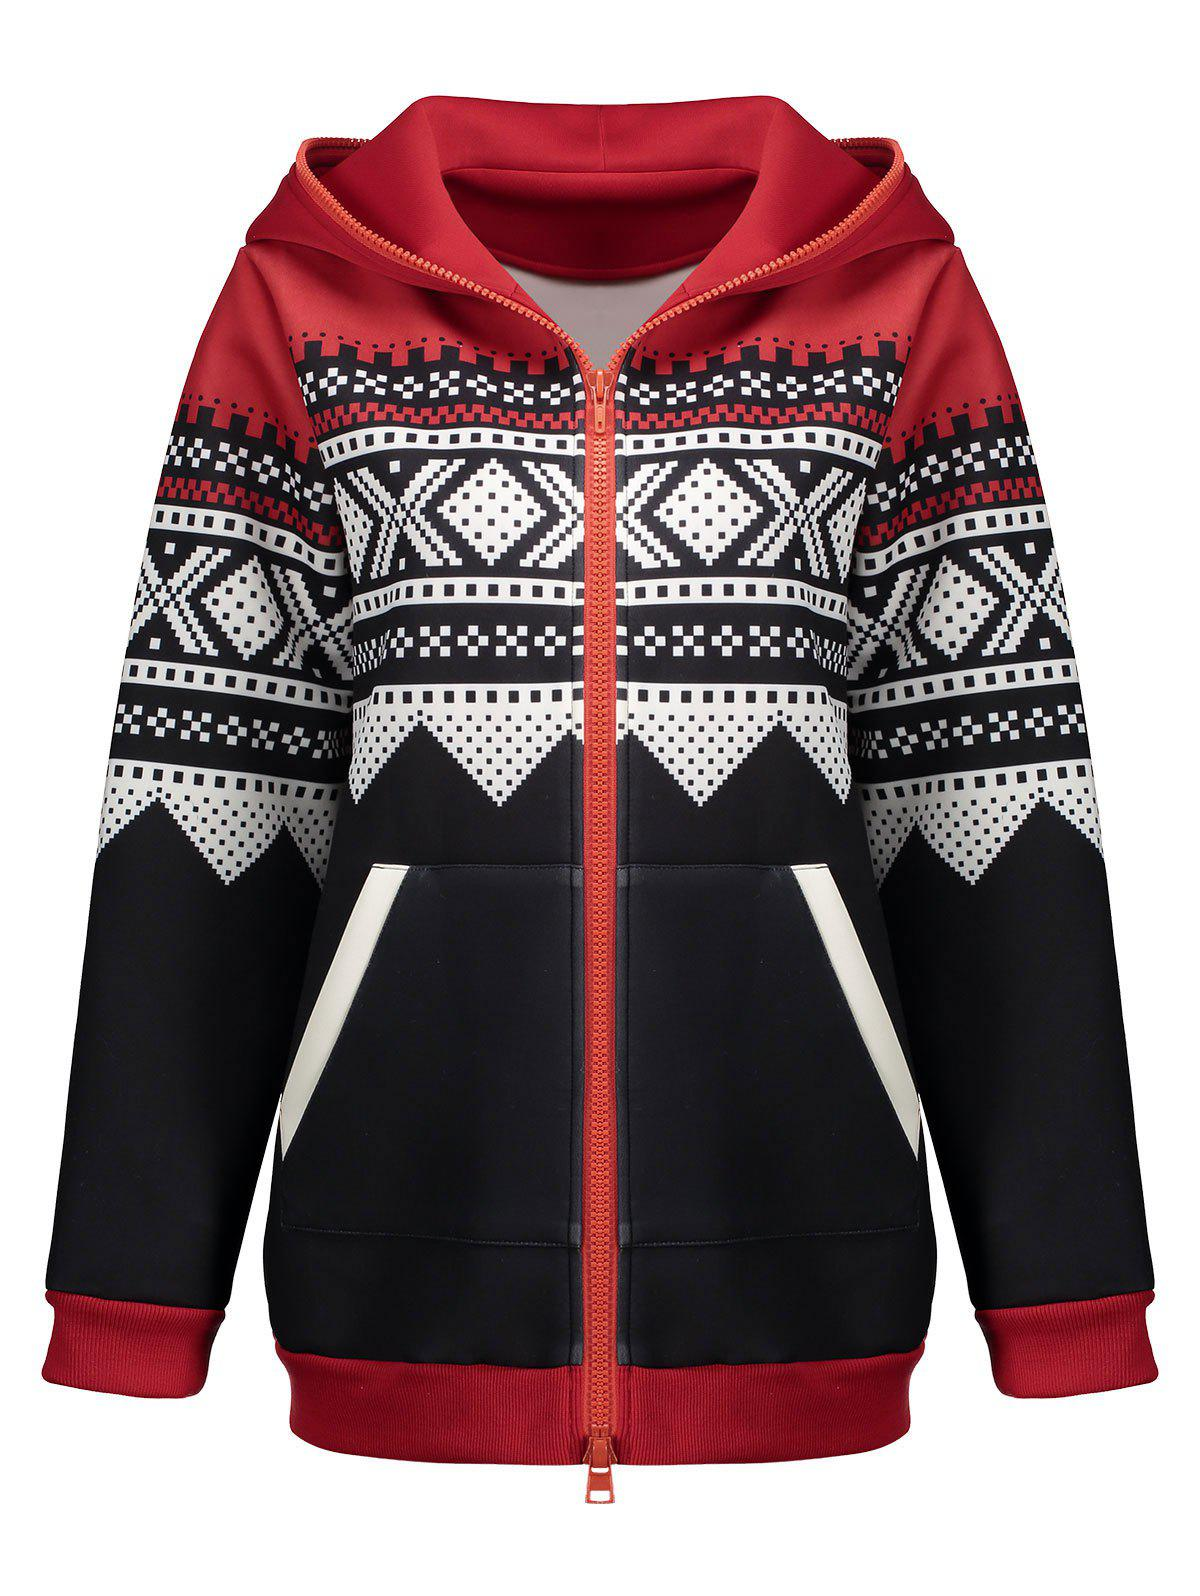 Plus Size Christmas Zipper Hooded JacketWOMEN<br><br>Size: 3XL; Color: BLACK; Clothes Type: Jackets; Material: Polyester; Type: Slim; Shirt Length: Regular; Sleeve Length: Full; Collar: Hooded; Pattern Type: Feather; Embellishment: Front Pocket,Pockets; Style: Fashion; Season: Fall,Winter; Weight: 0.8600kg; Package Contents: 1 x Jacket;